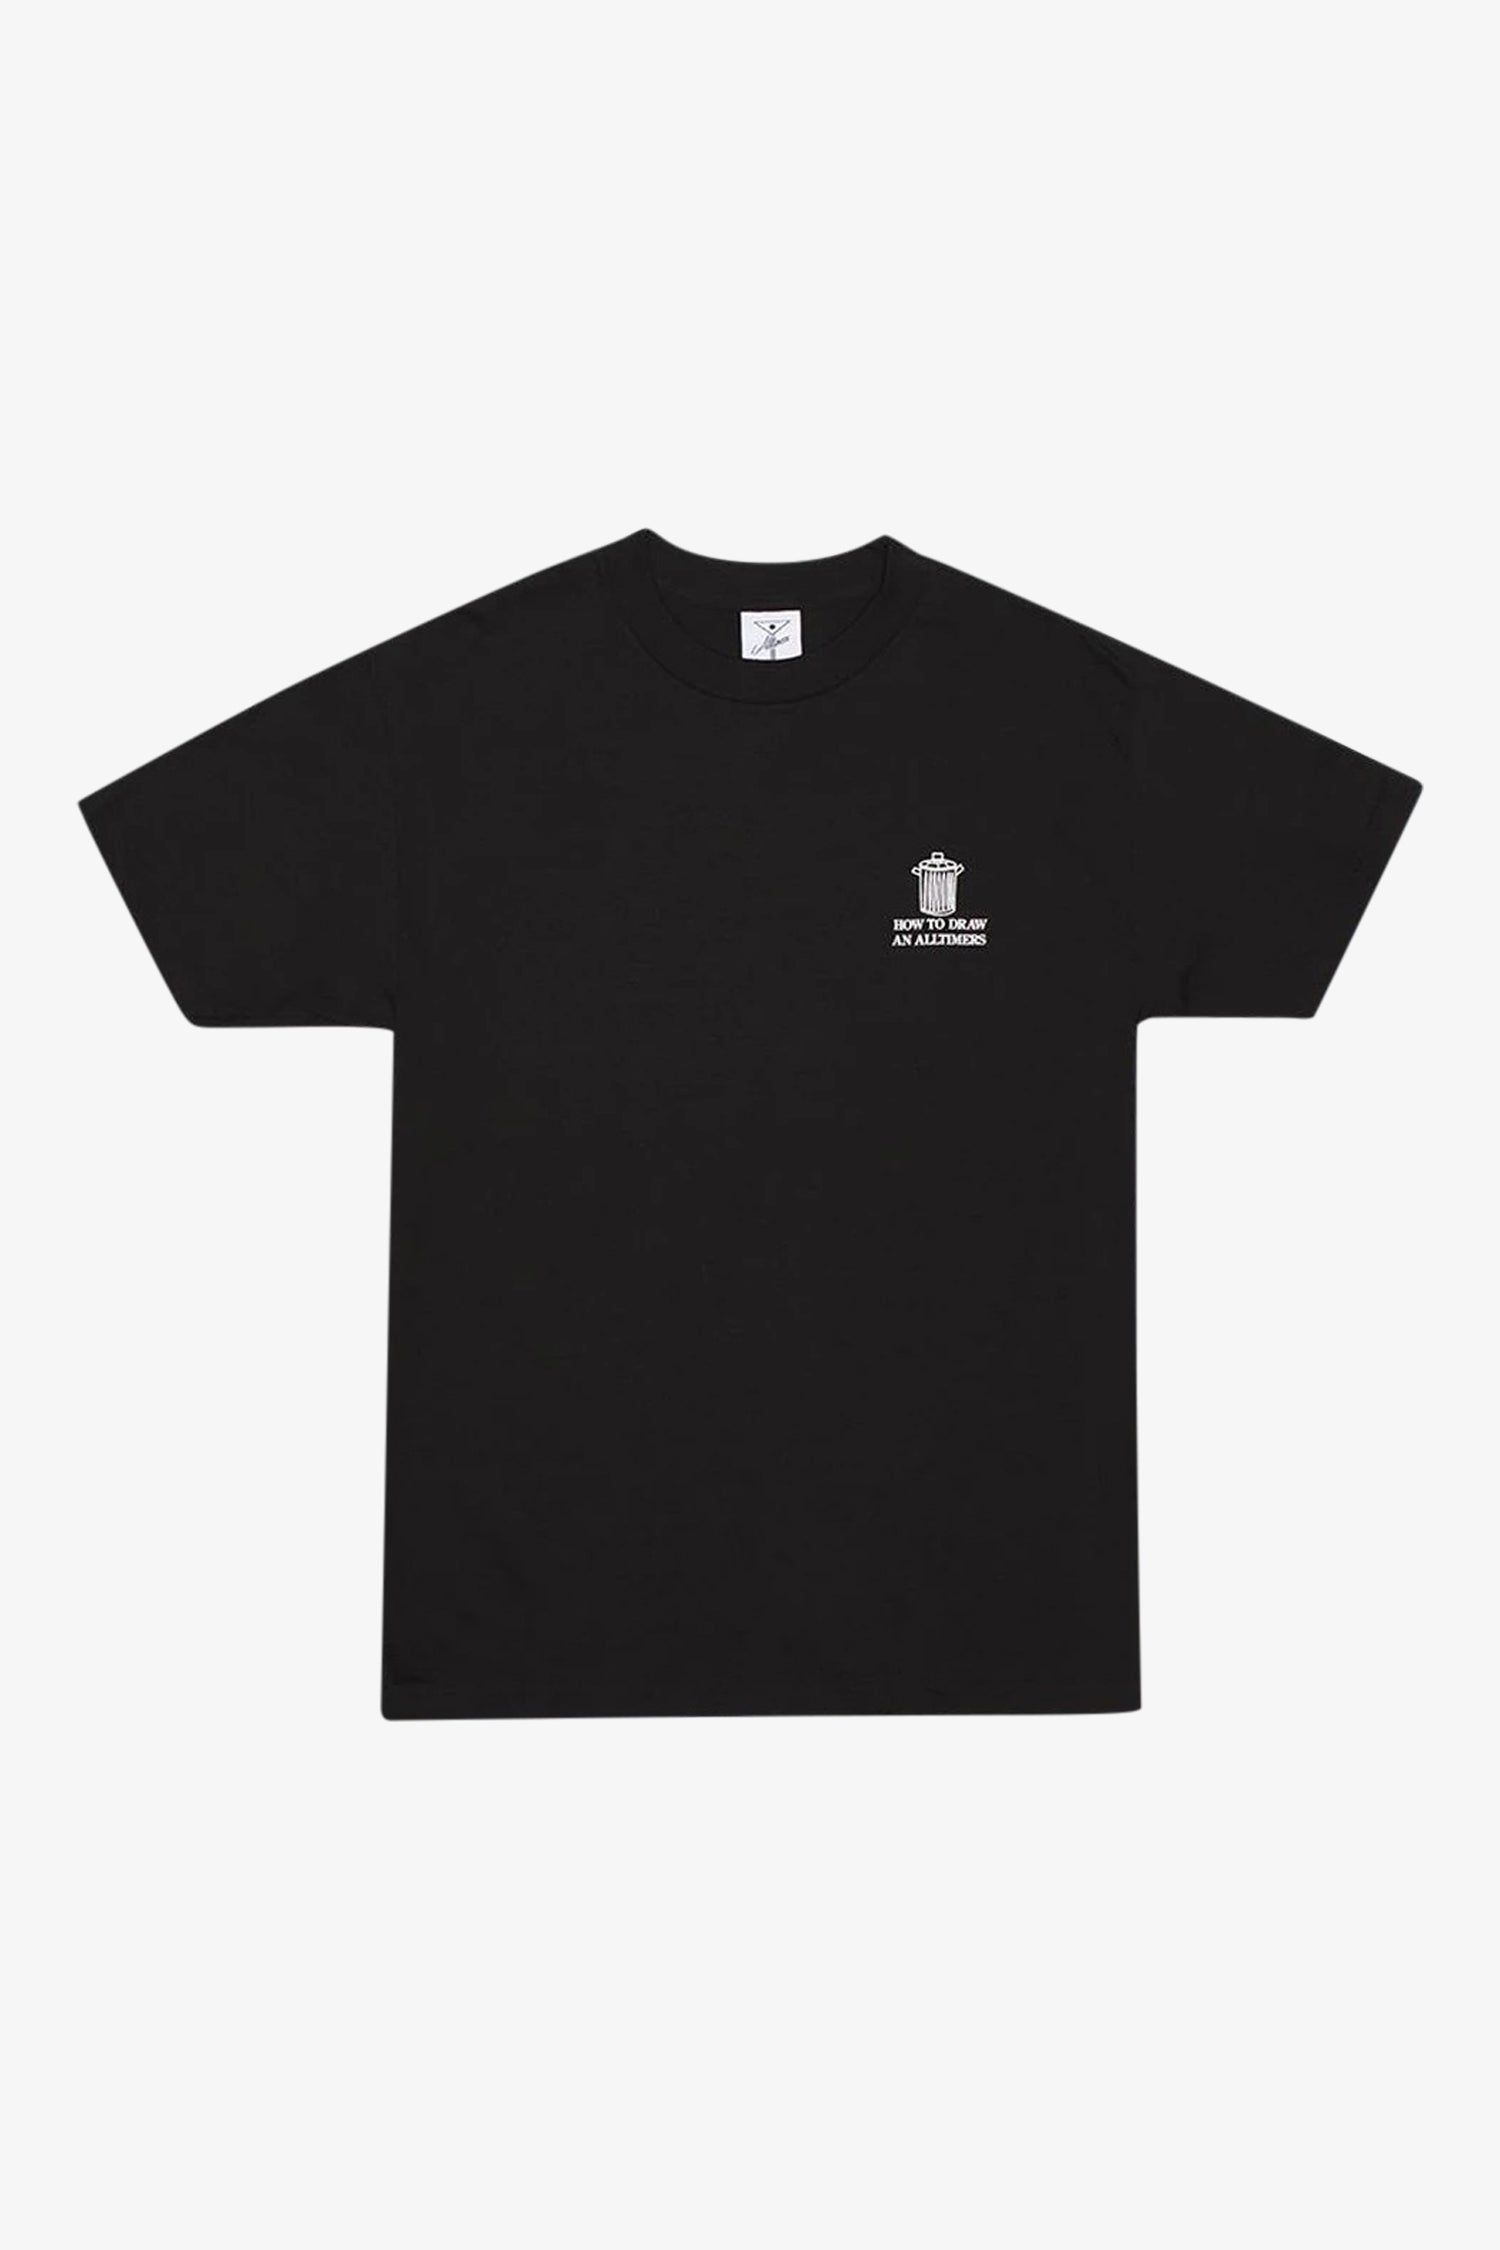 Selectshop FRAME - ALLTIMERS How 2 Tee T-Shirt Dubai